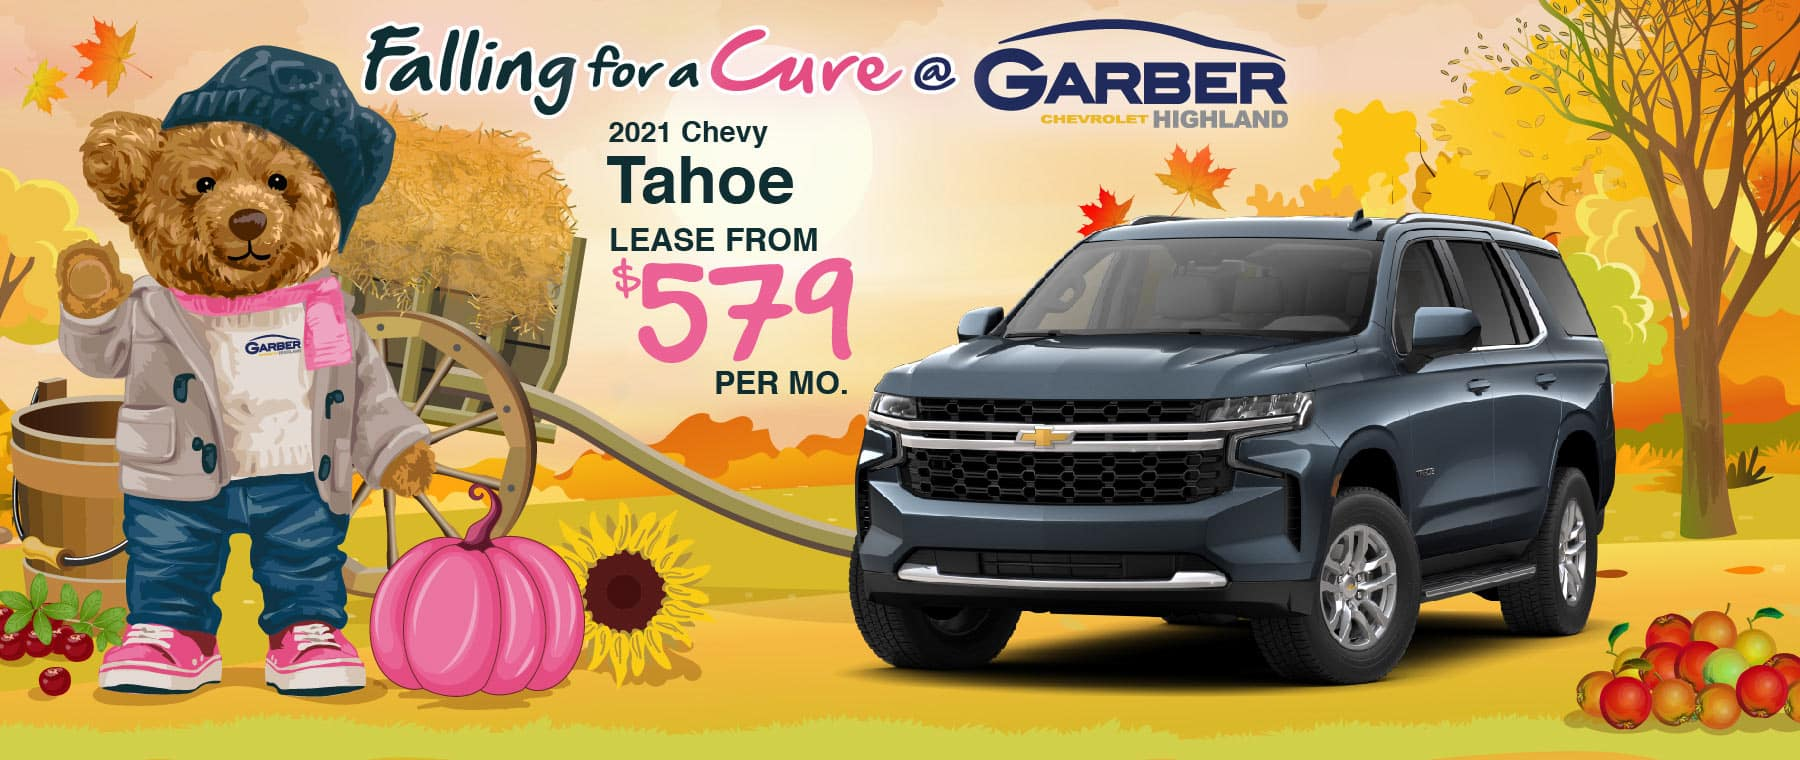 2021 Chevy Tahoe - lease from $579 per month